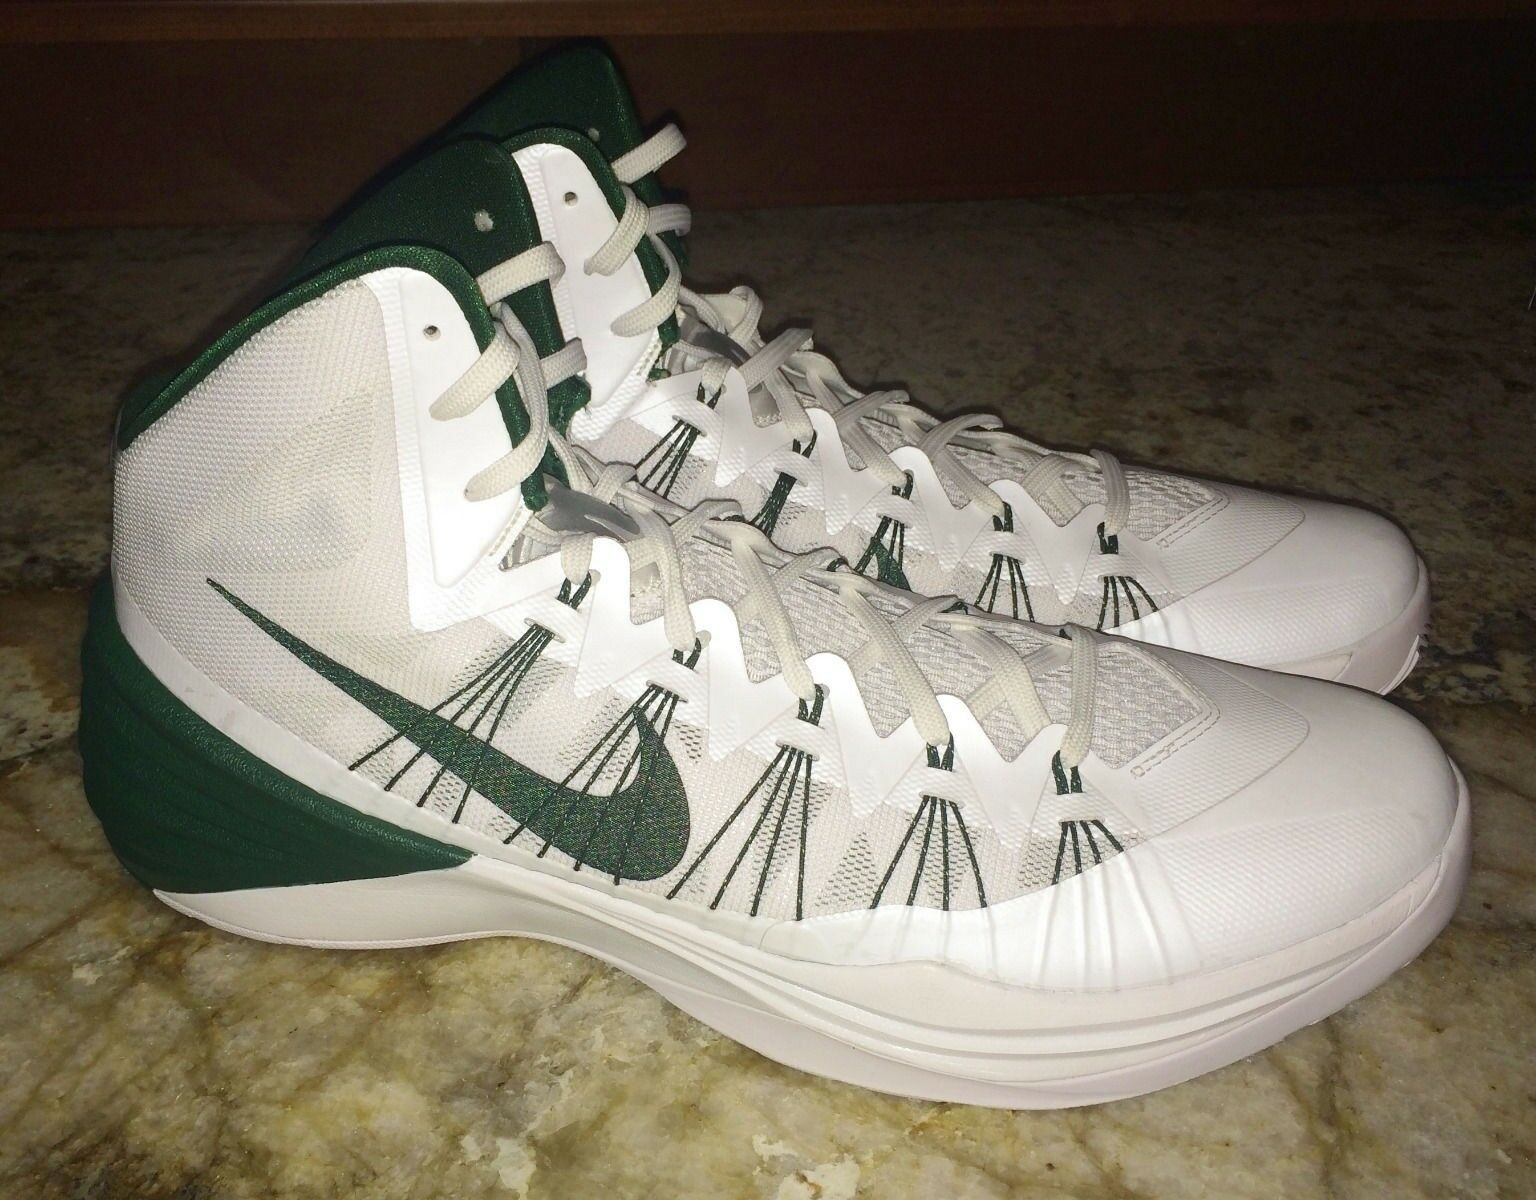 NIKE 2013 Zoom Hyperdunk TB White Green Basketball shoes Sneakers NEW Mens 16.5